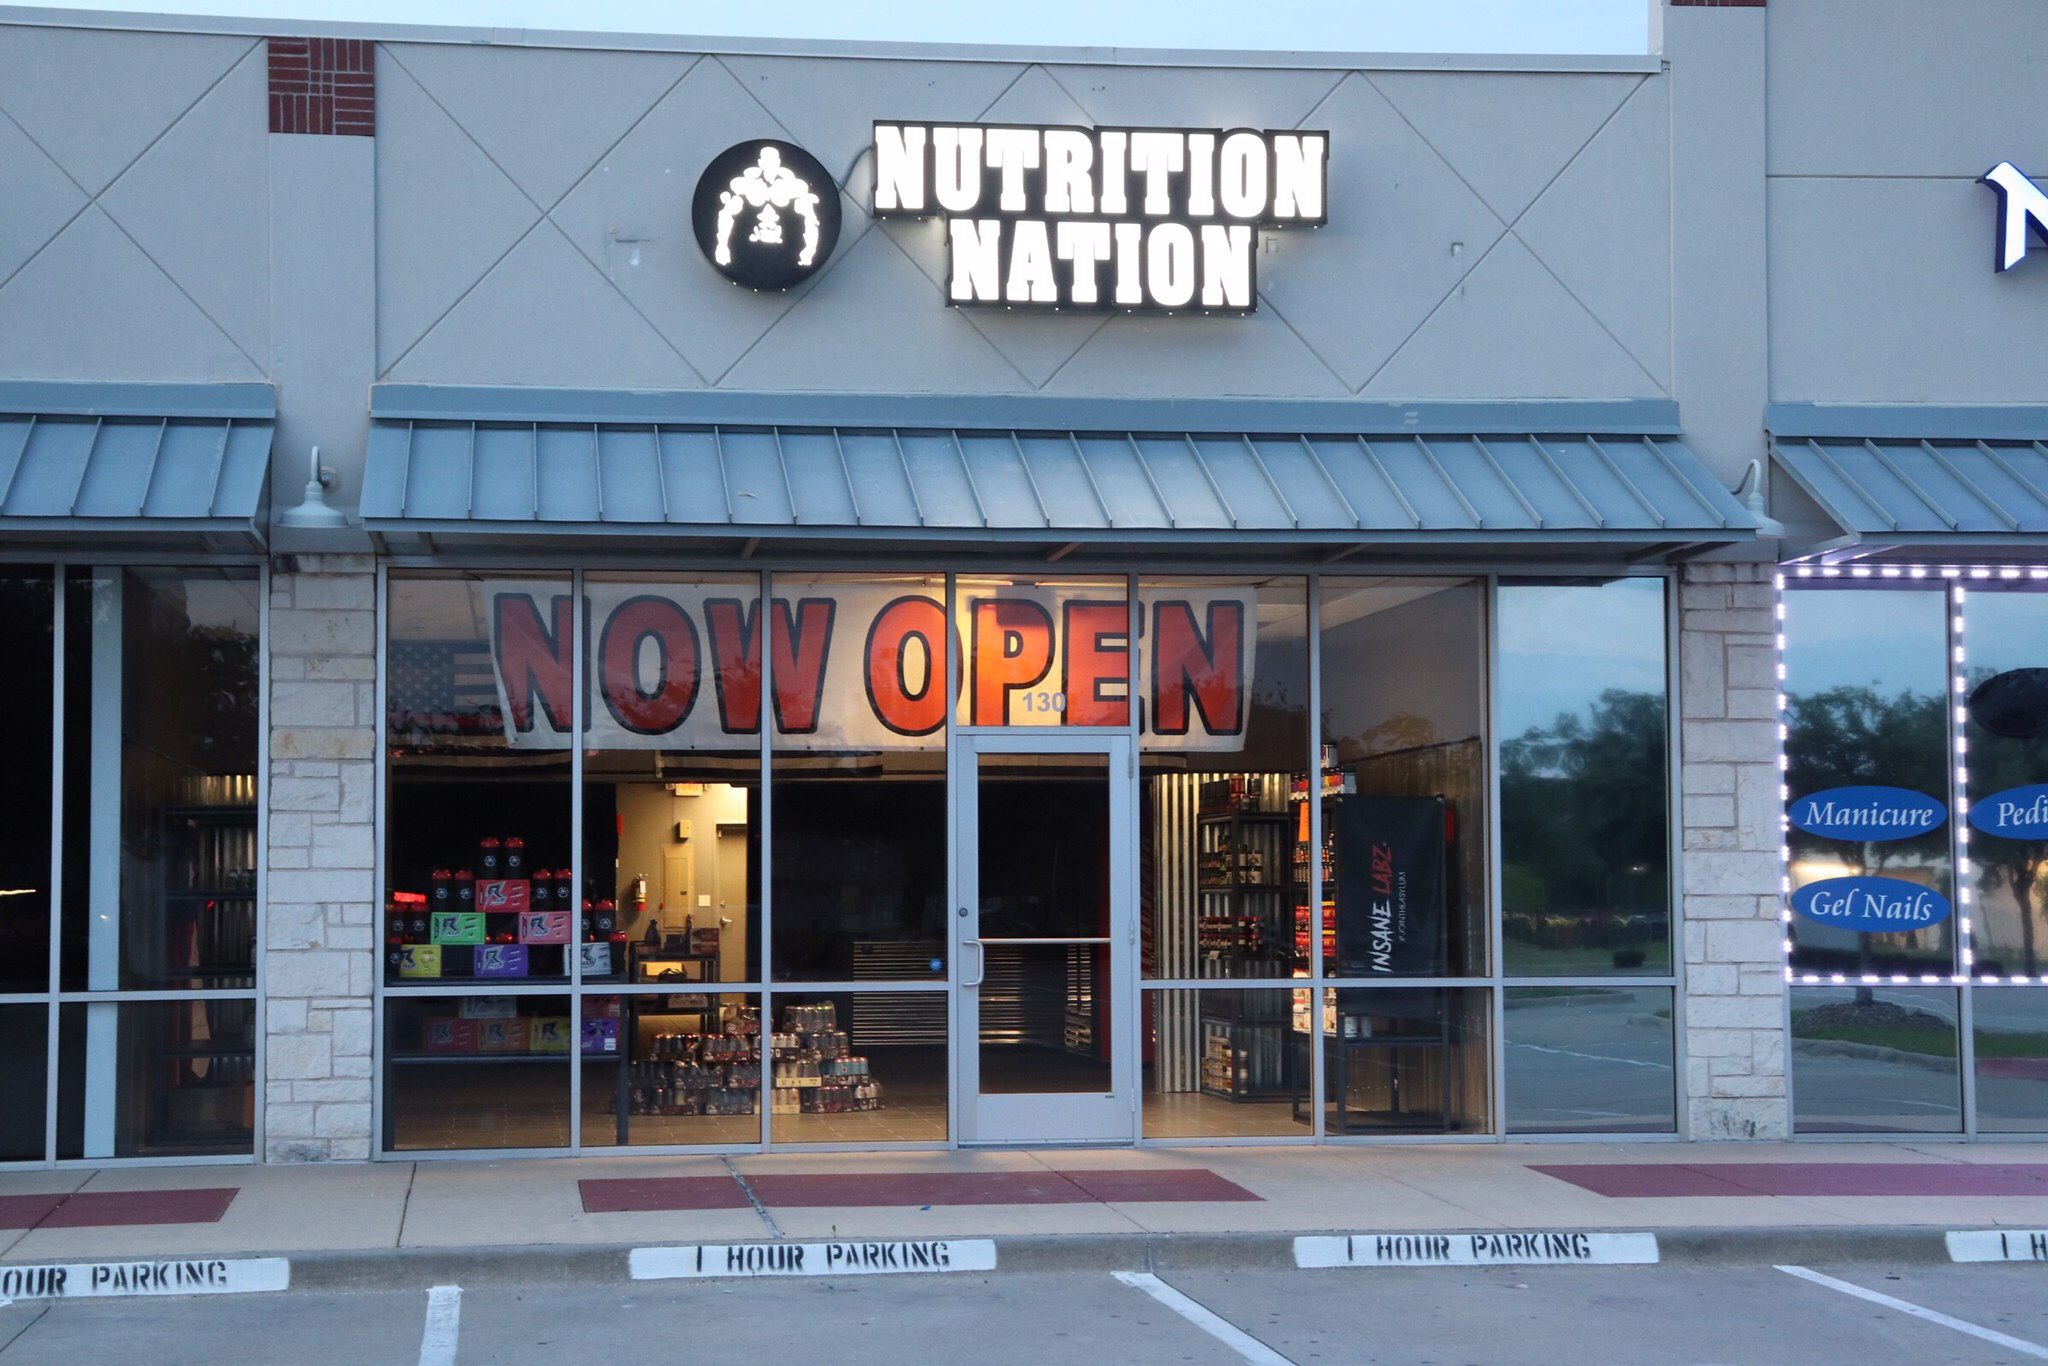 Nutrition Nation store